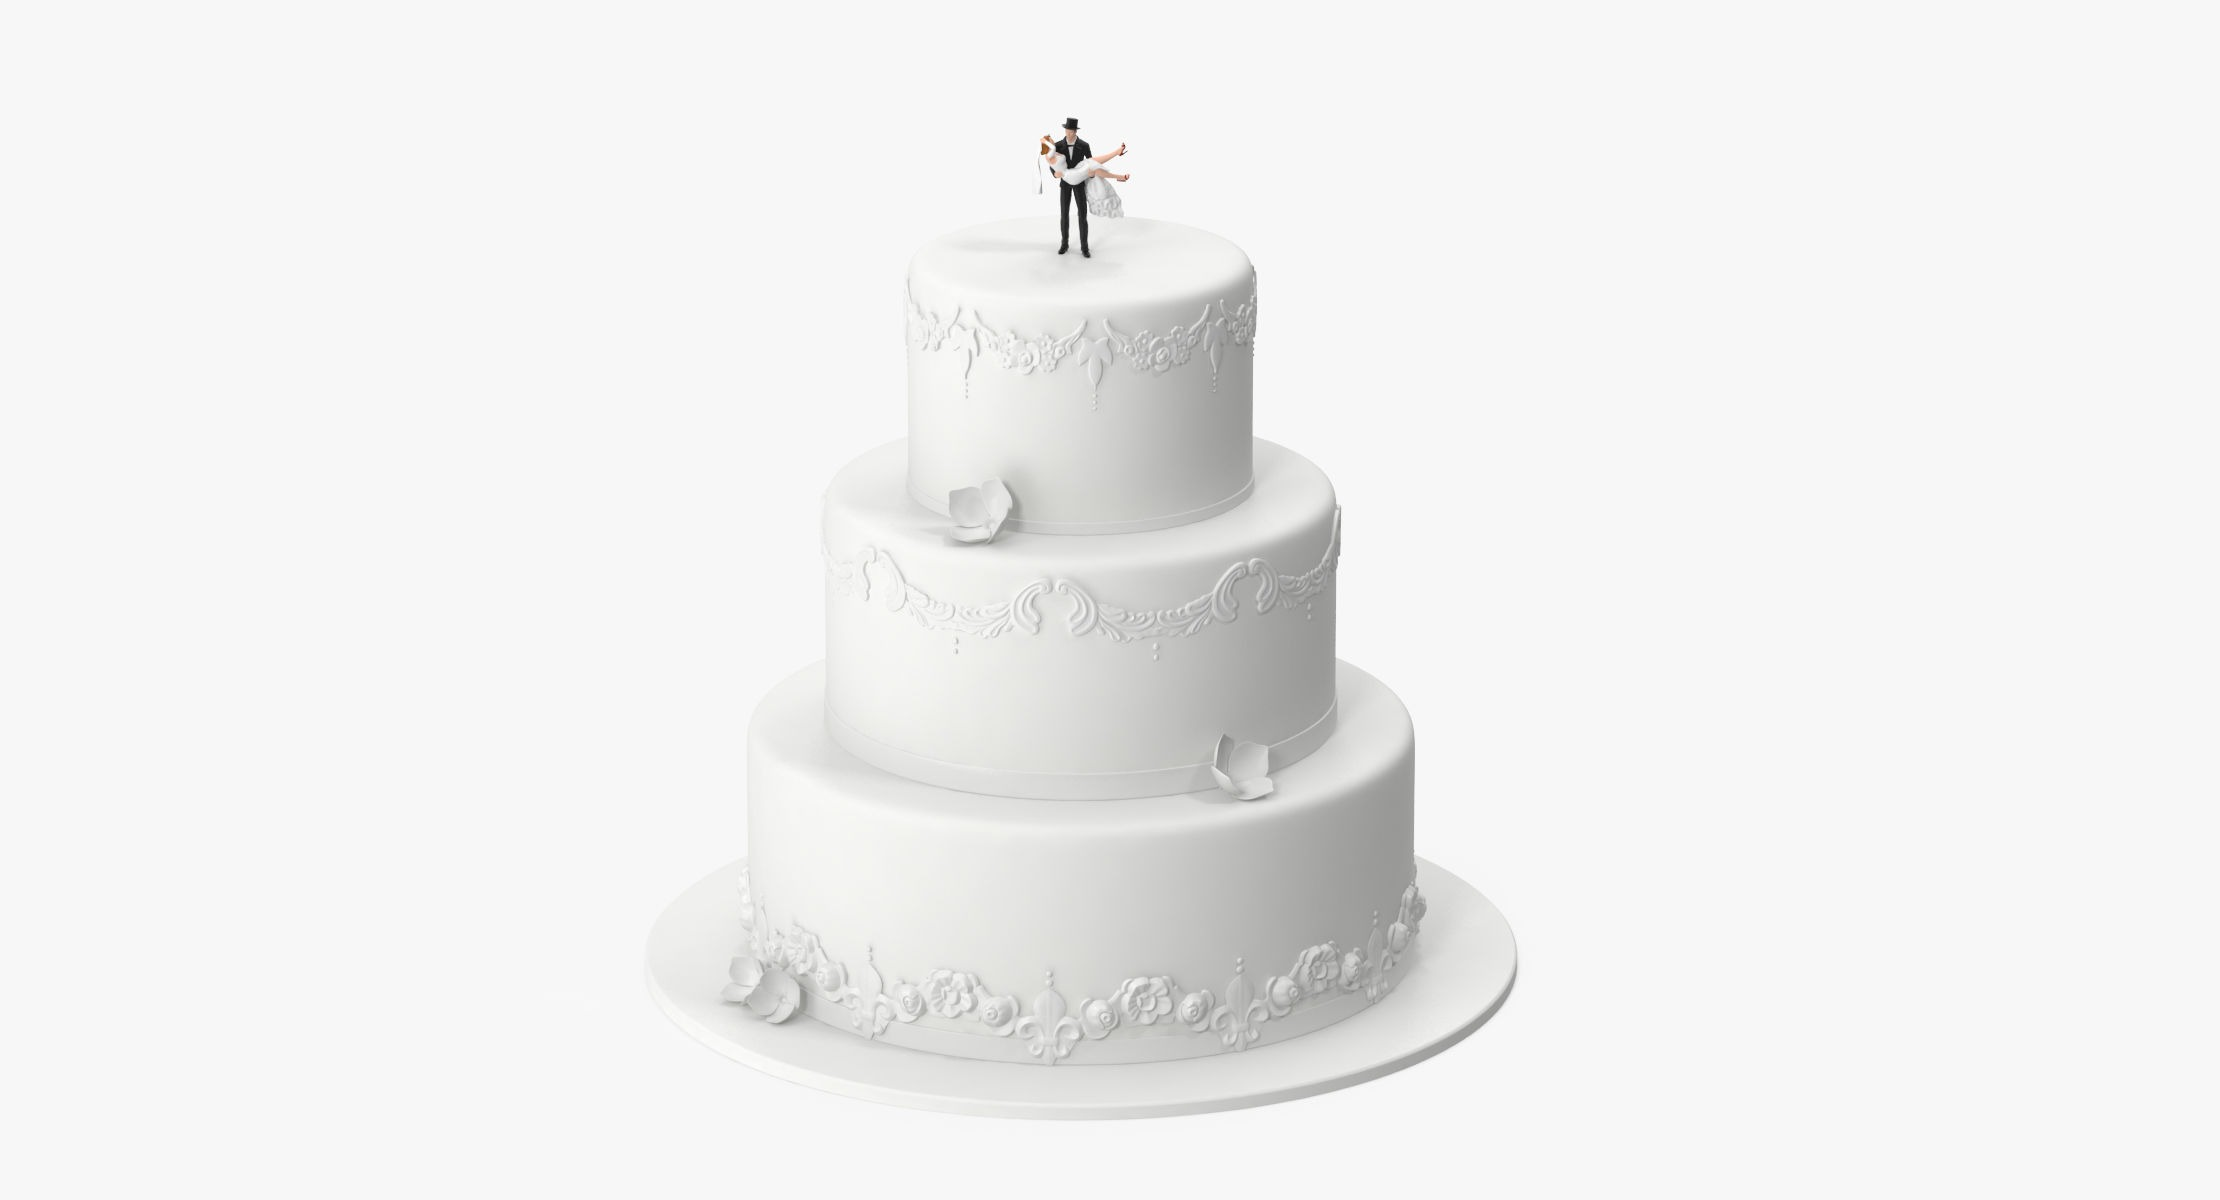 Round Wedding Cake With Miniatures 03 - reel 1